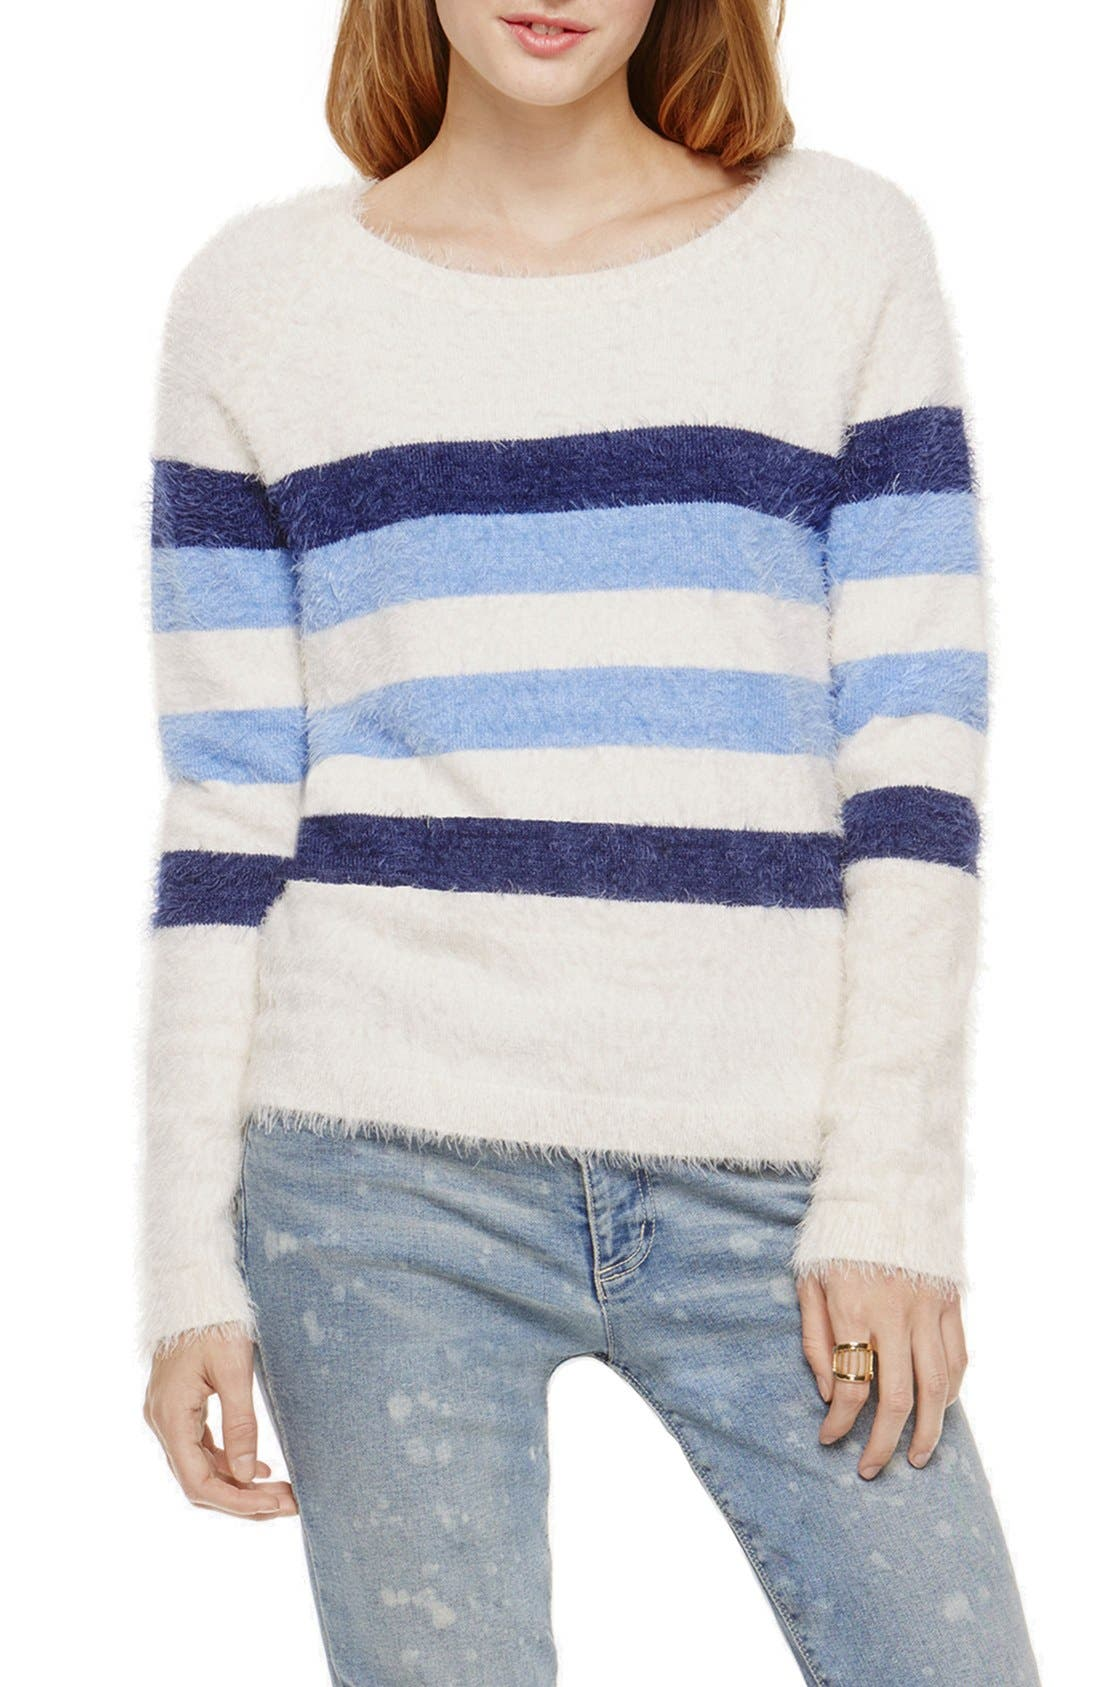 Main Image - Two by Vince CamutoEyelash Yarn Stripe Pullover